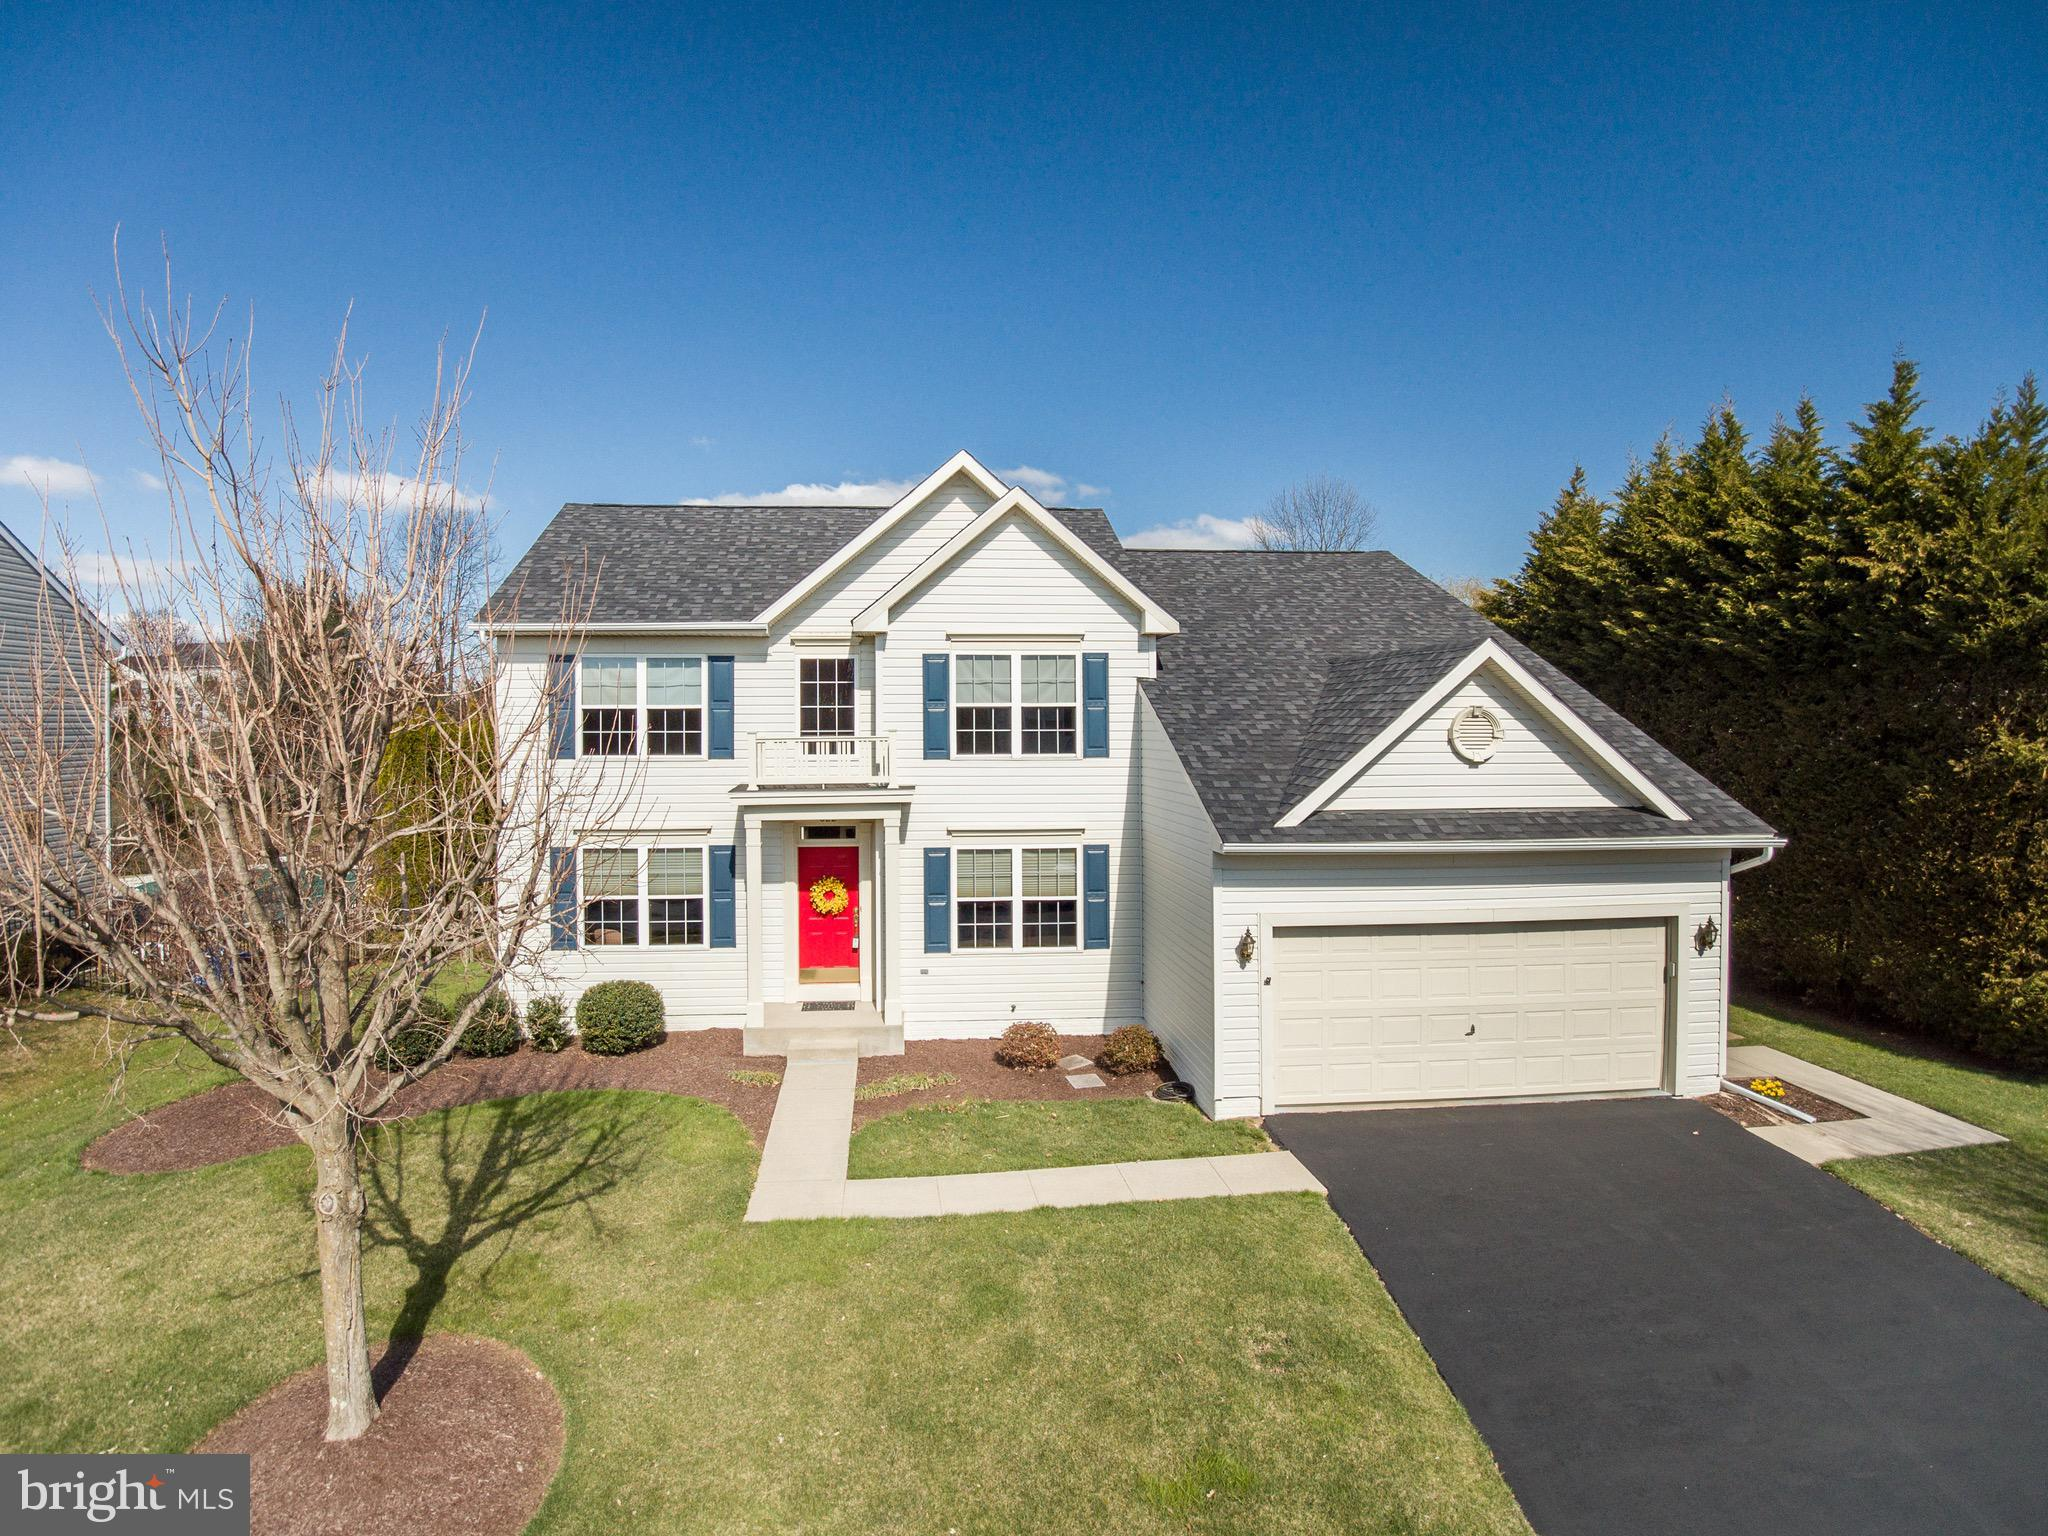 322 MOORES BRANCH CIRCLE, WESTMINSTER, MD 21158